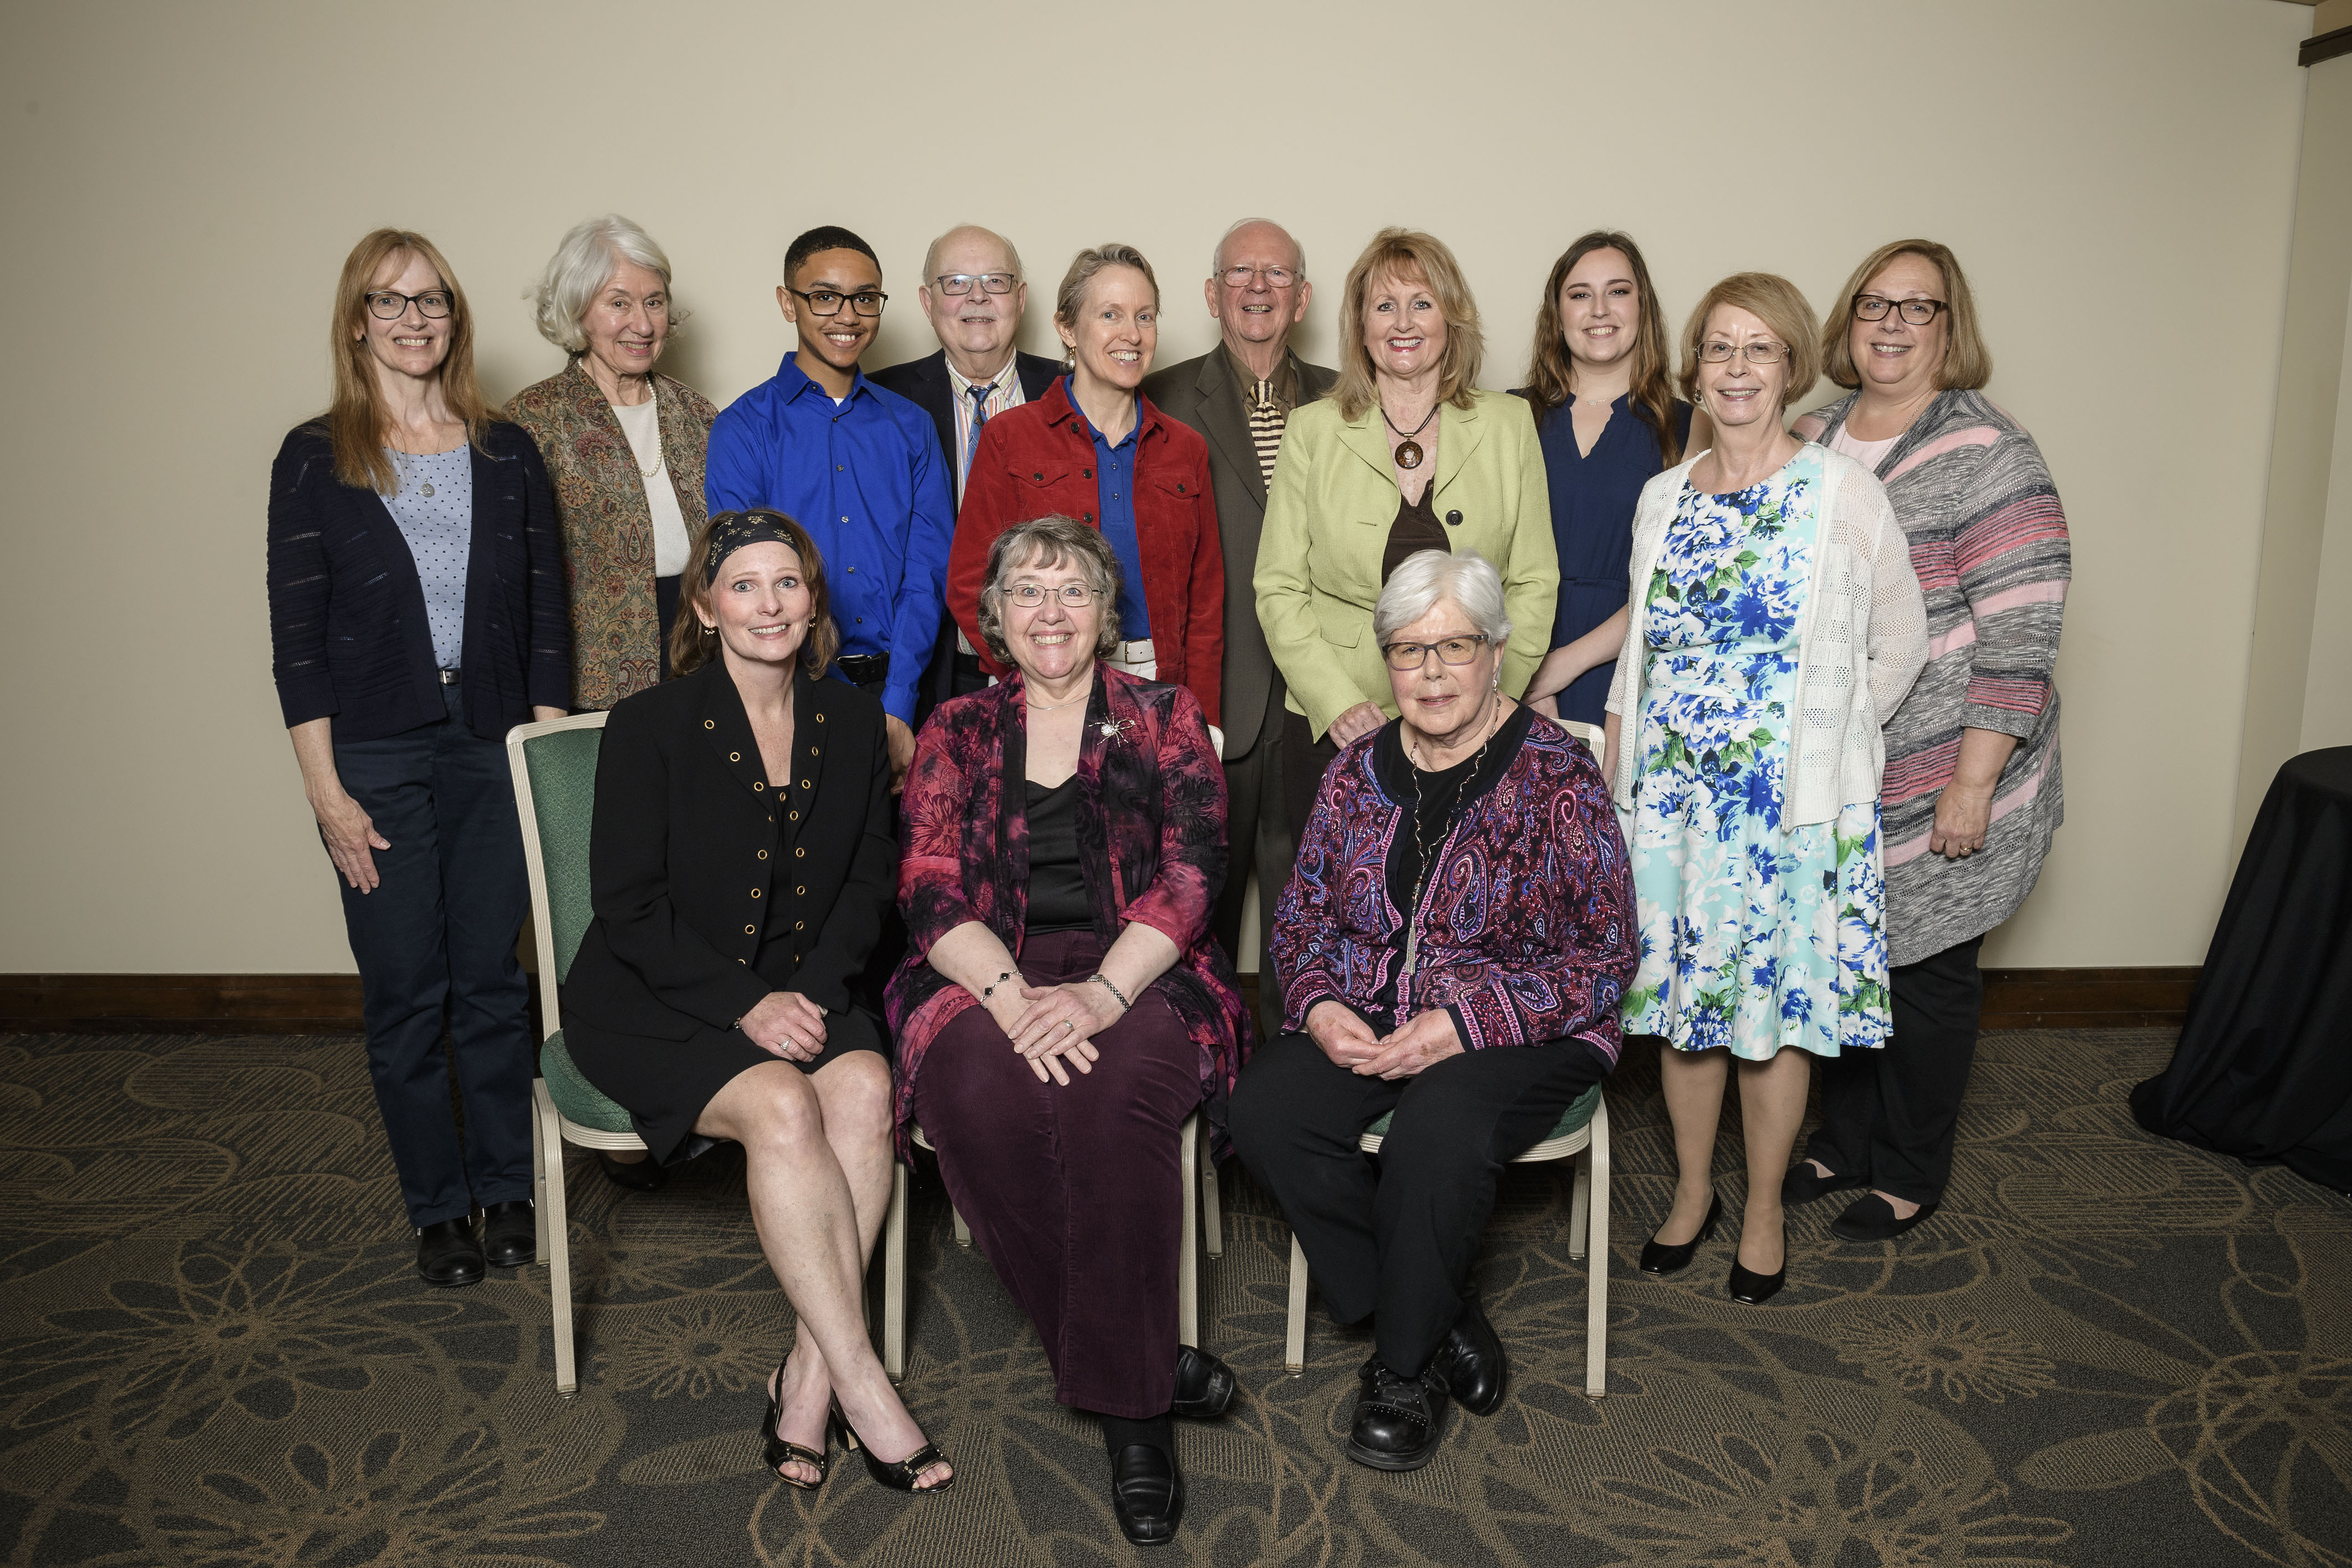 Photograph of 13 Friend of the Libraries Board Members)